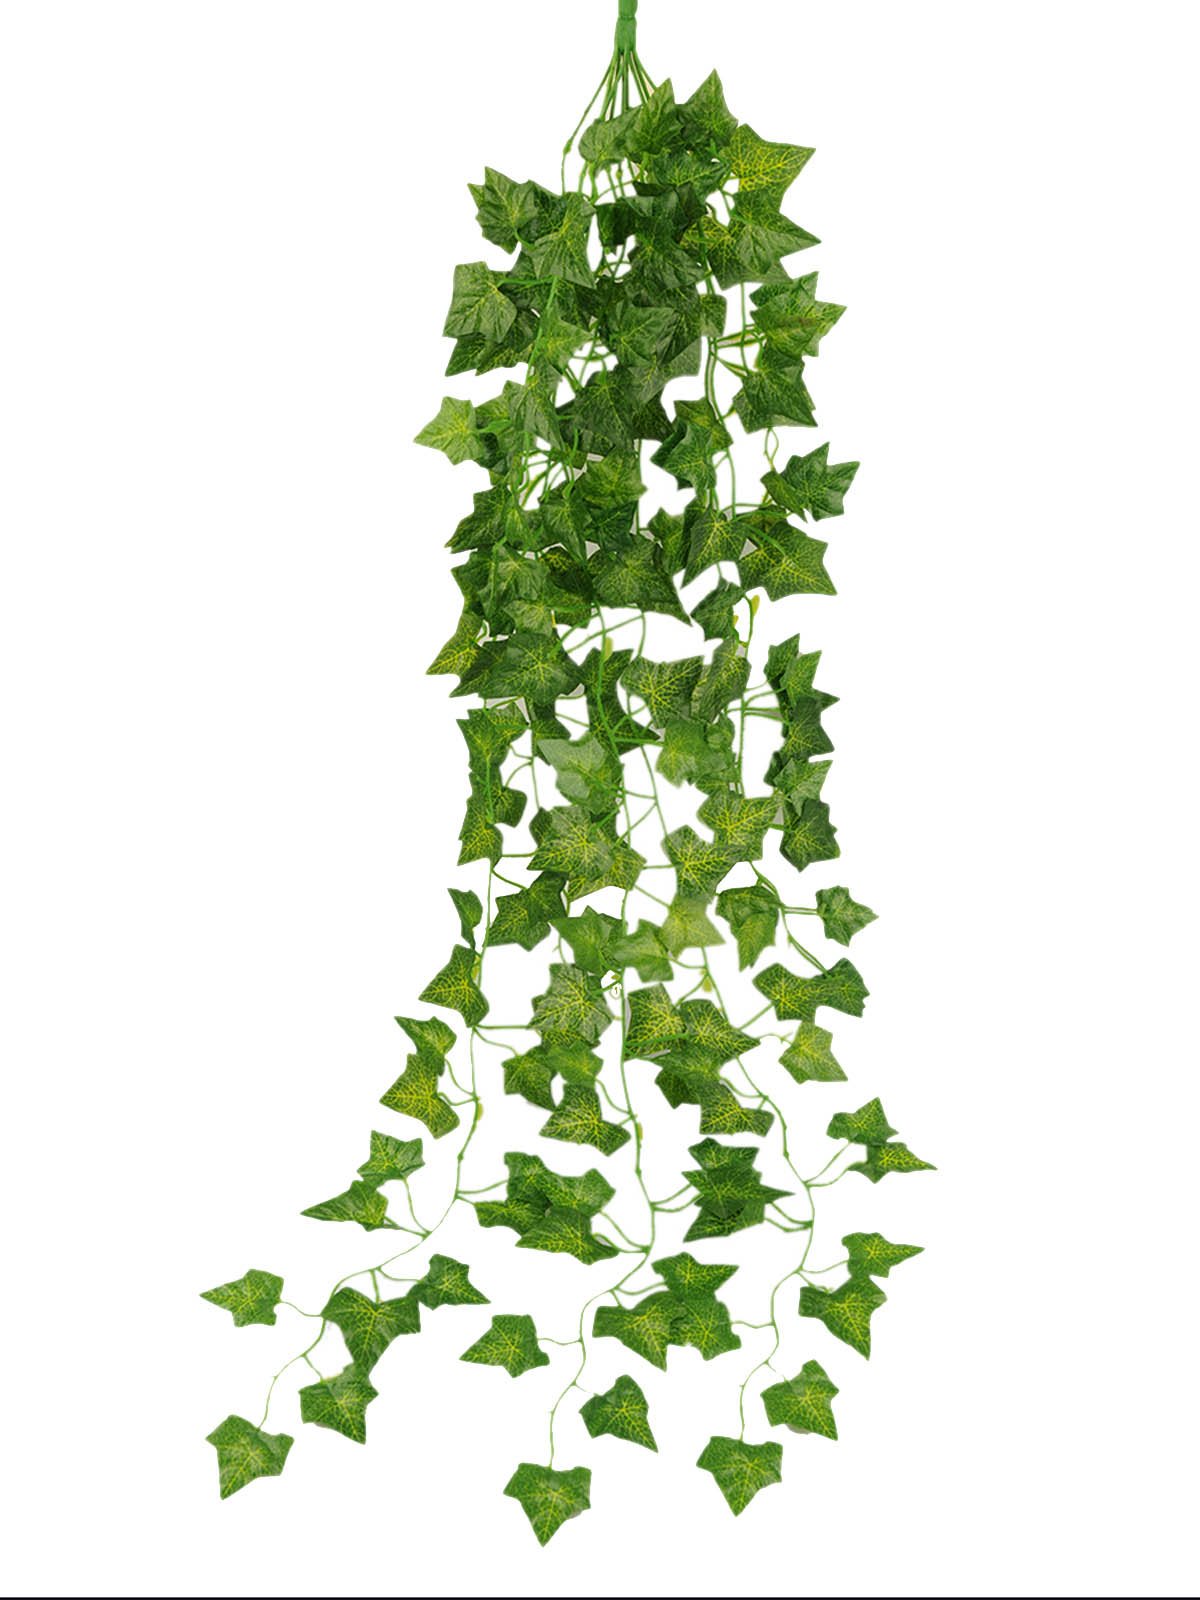 Artificial Garden Green Plant Hanging Vine Plant Leaves